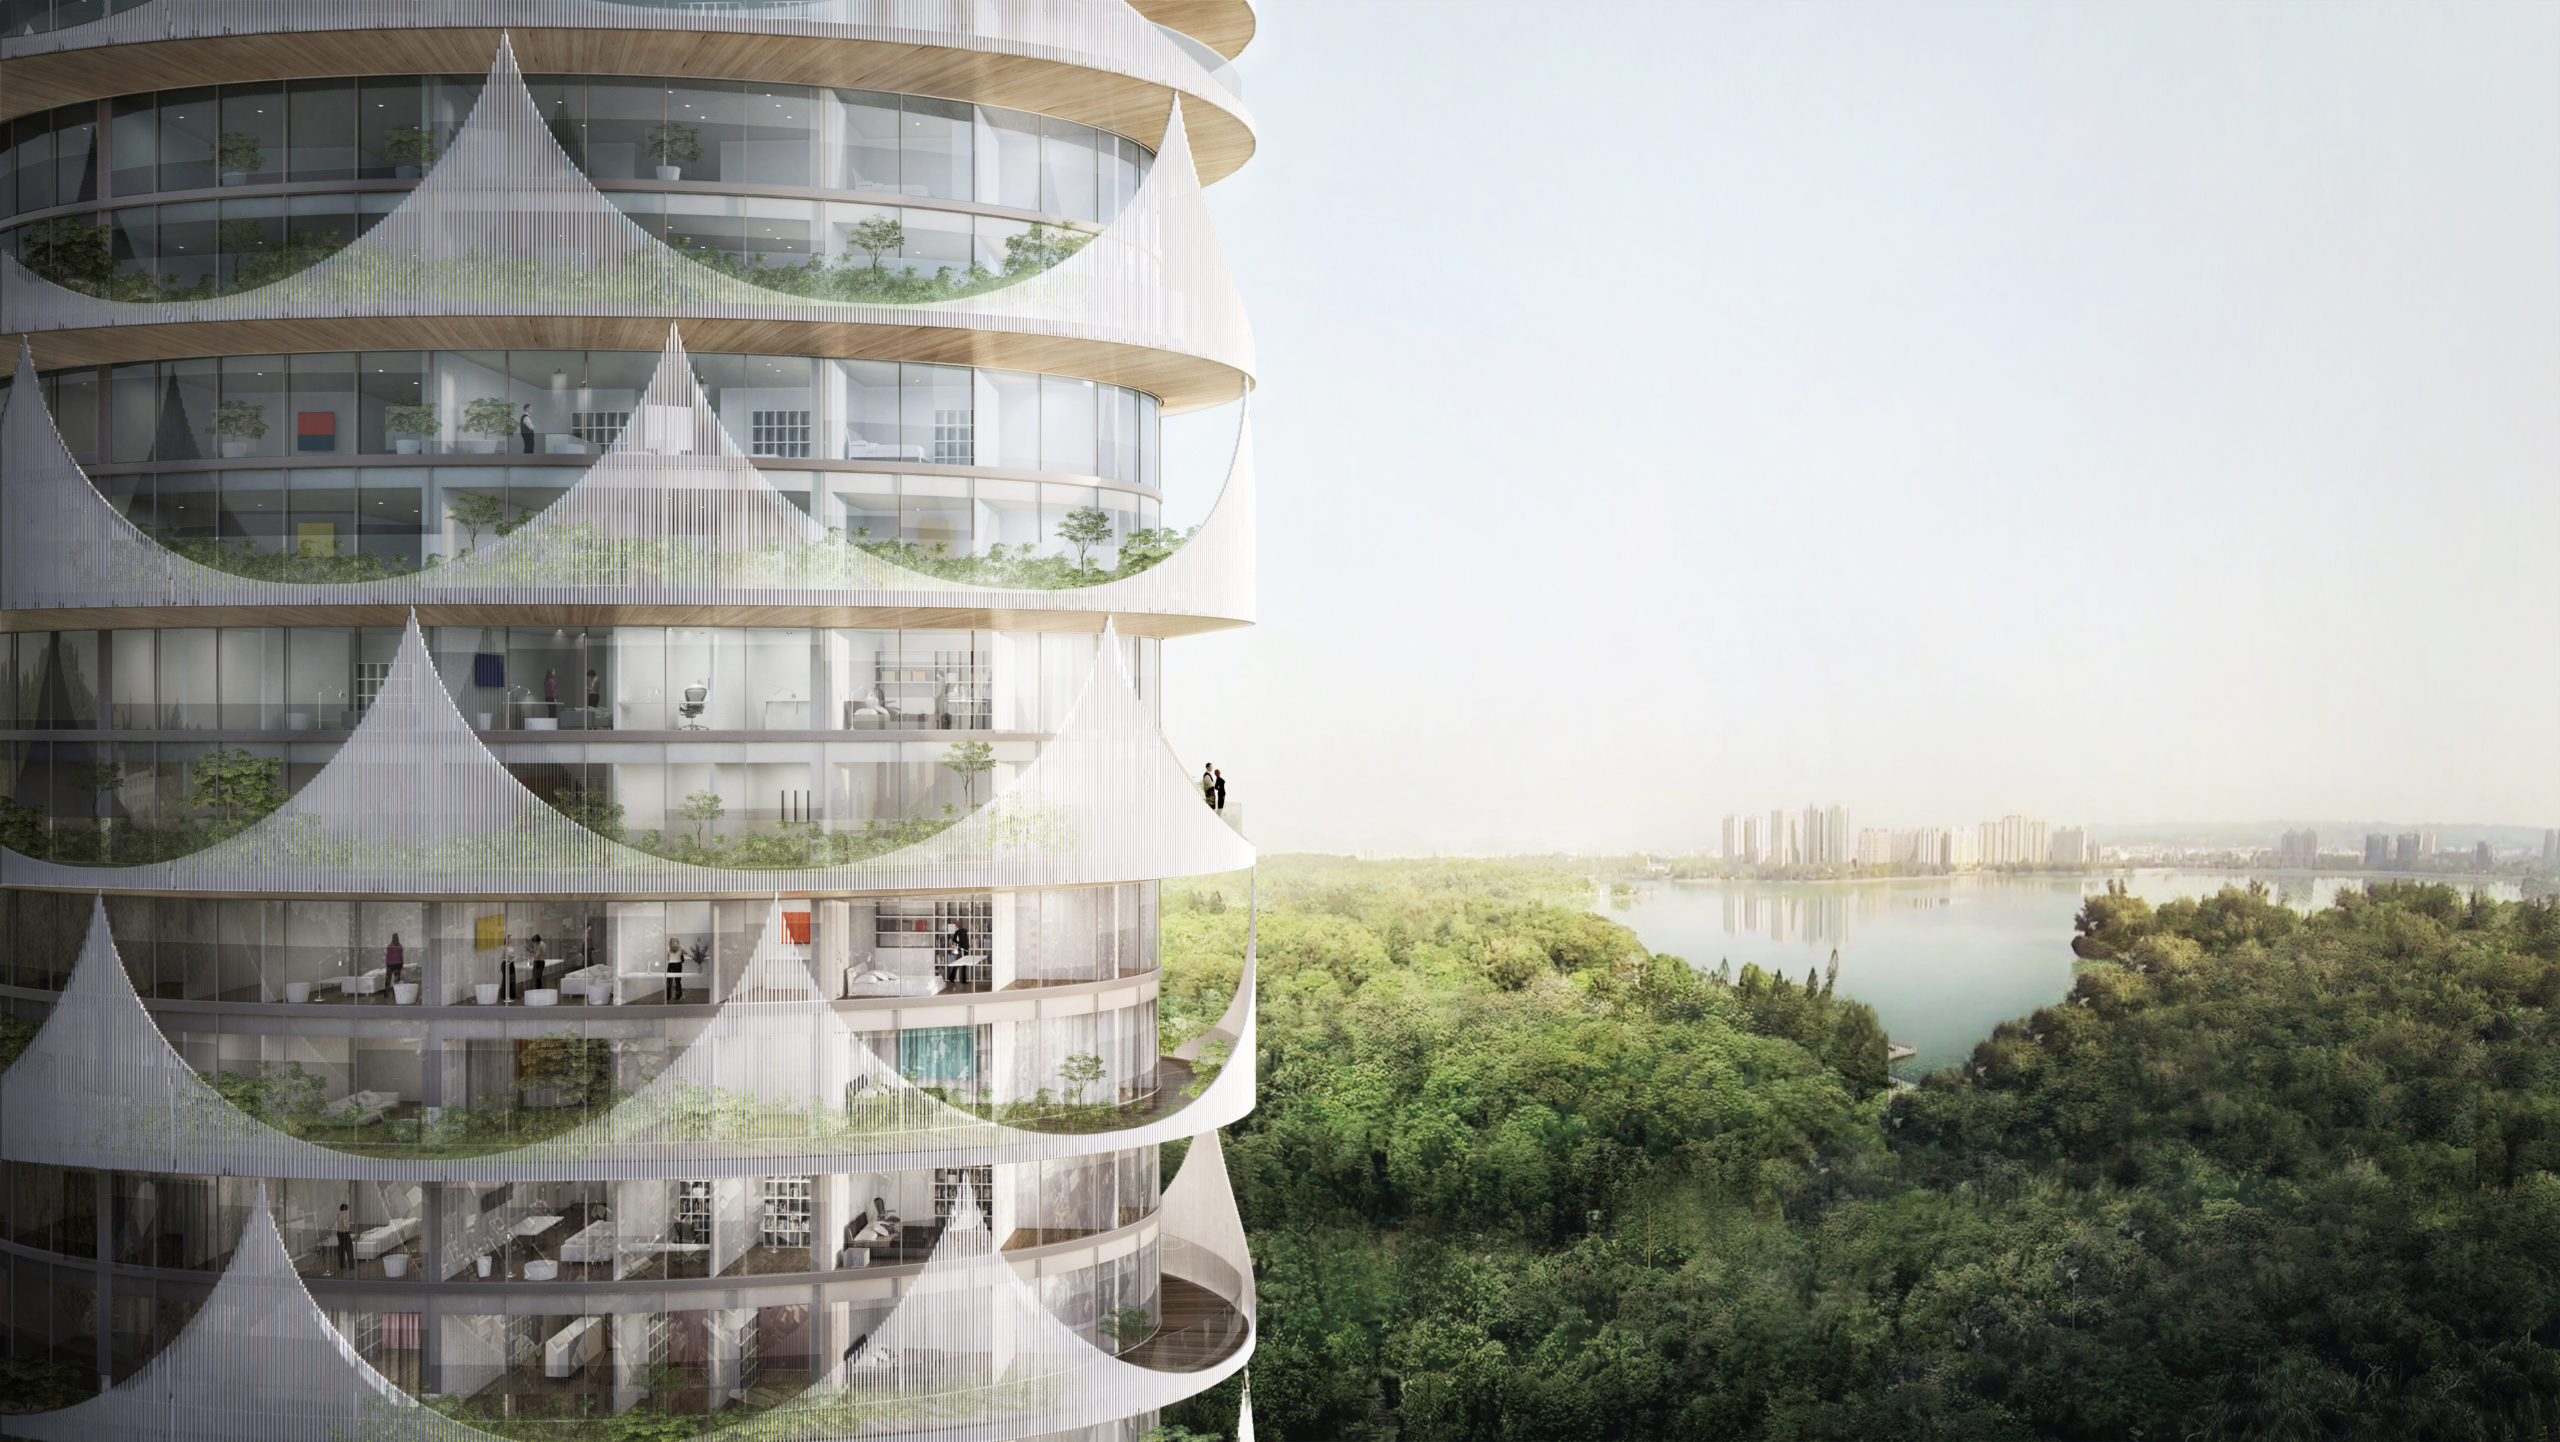 spatial practice architecture office Los Angeles Hong Kong chengcing residential tower kaohsiung taiwan lake view